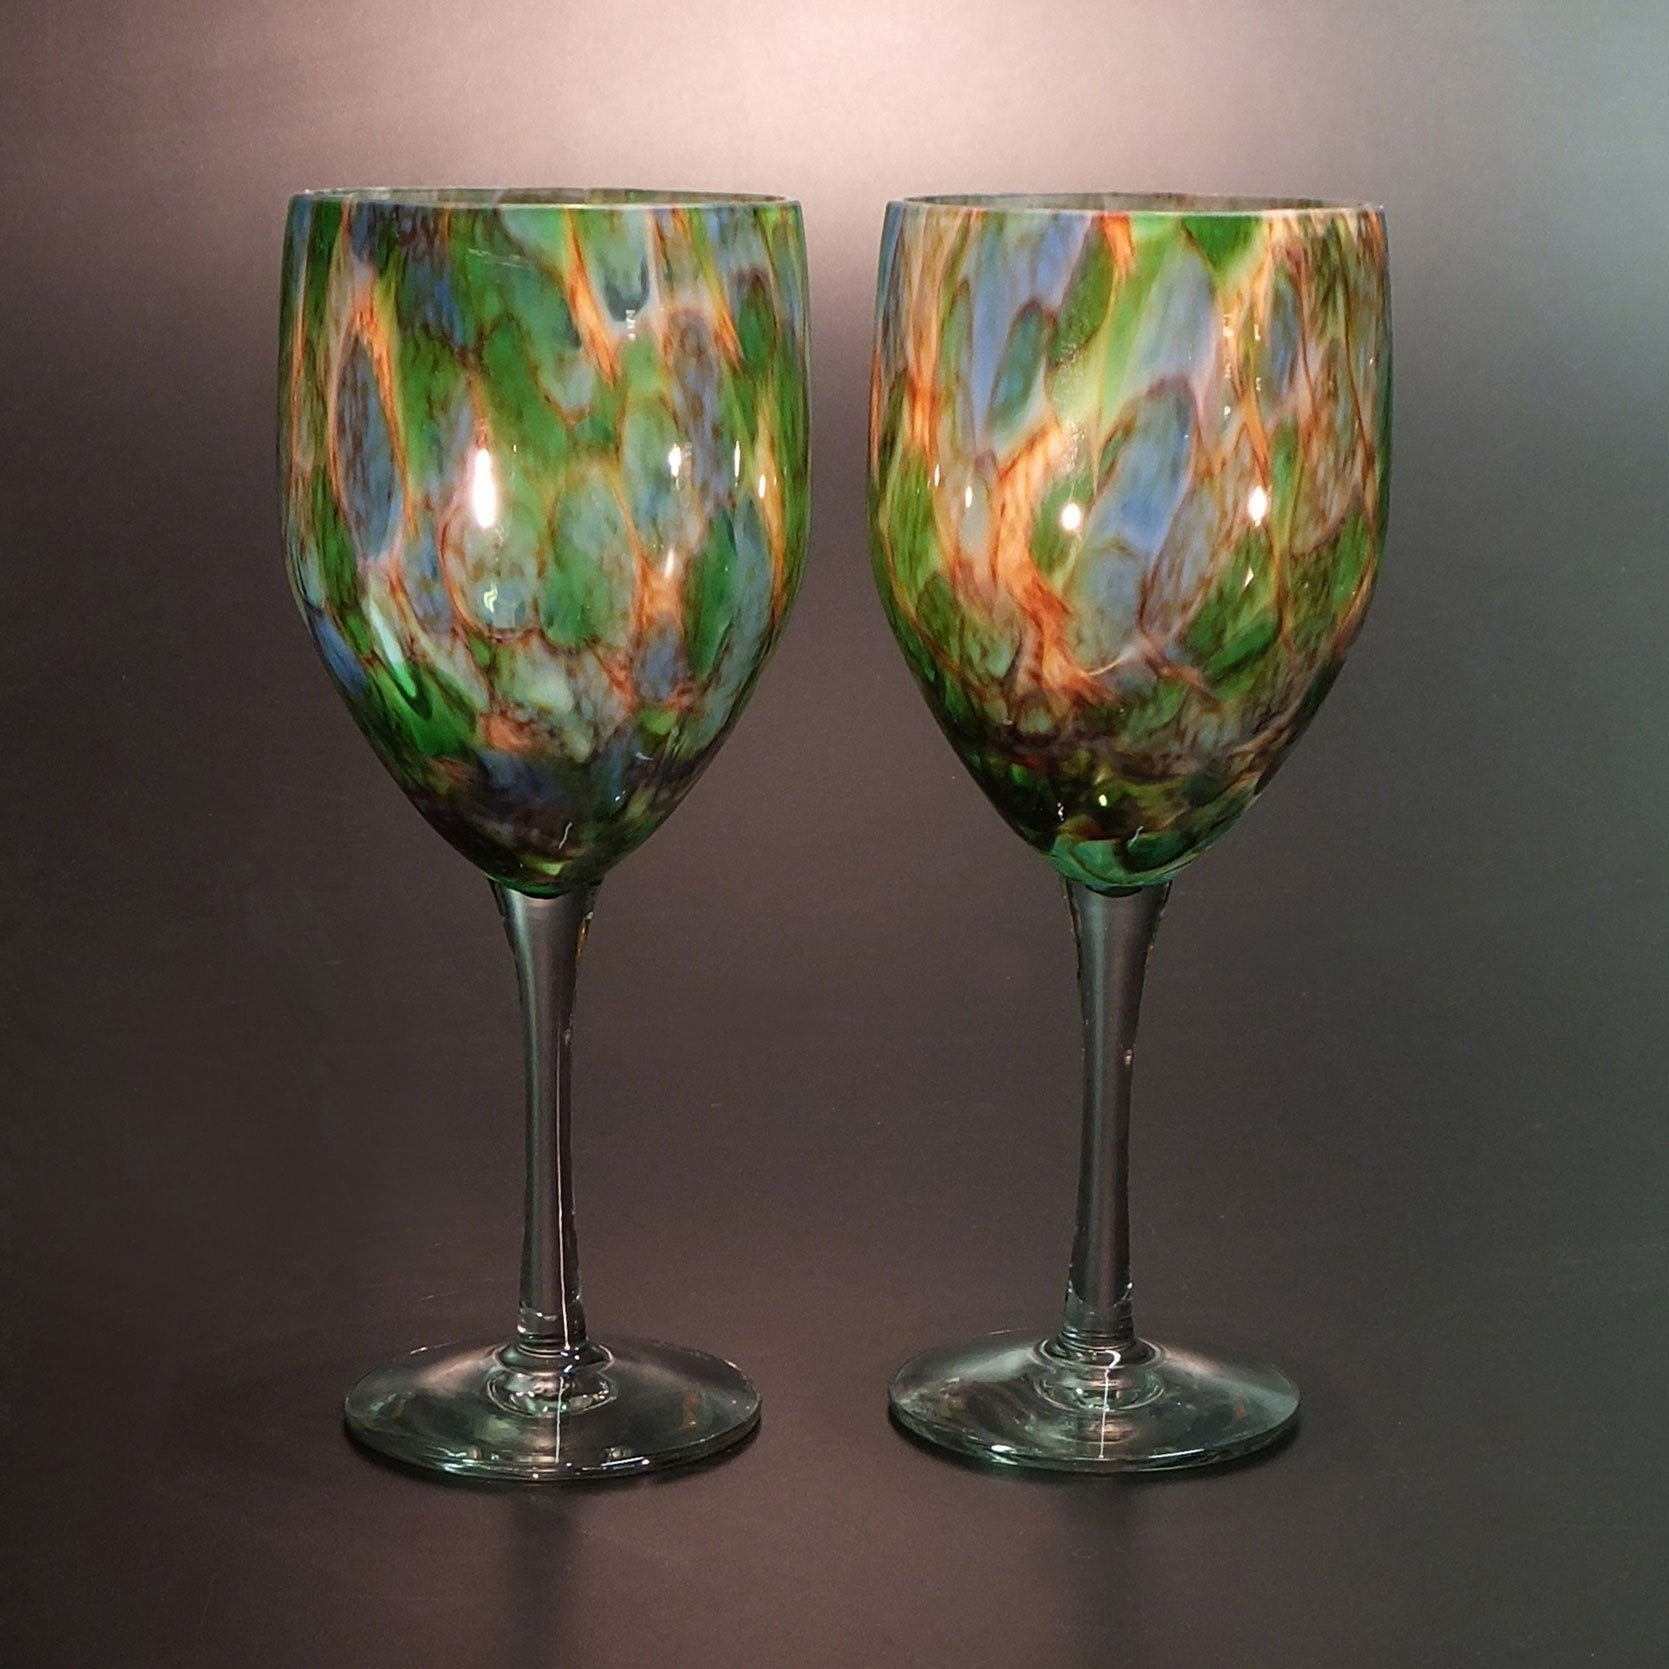 The Glass Forge Wine Glass Shown In Et Teal Artistic Functional Artisan Handblown Art Glass Barware Drinkware Handmade In The Usa Handmade In The Usa Sweetheart Gallery Contemporary Craft Gallery Fine